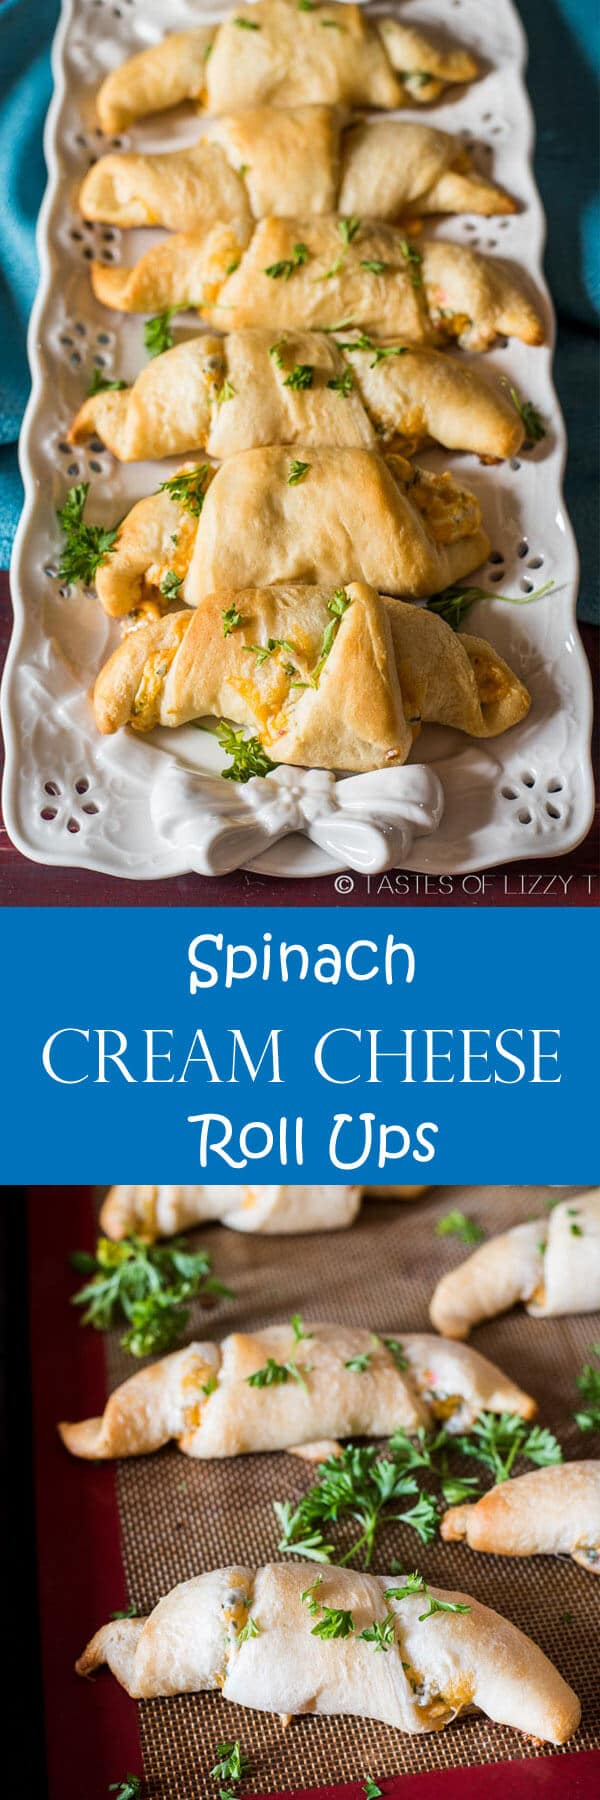 Crescent rolls stuffed with spinach, cheddar and cream cheese make a quick appetizer, lunch or snack. Get an extra dose of veggies!